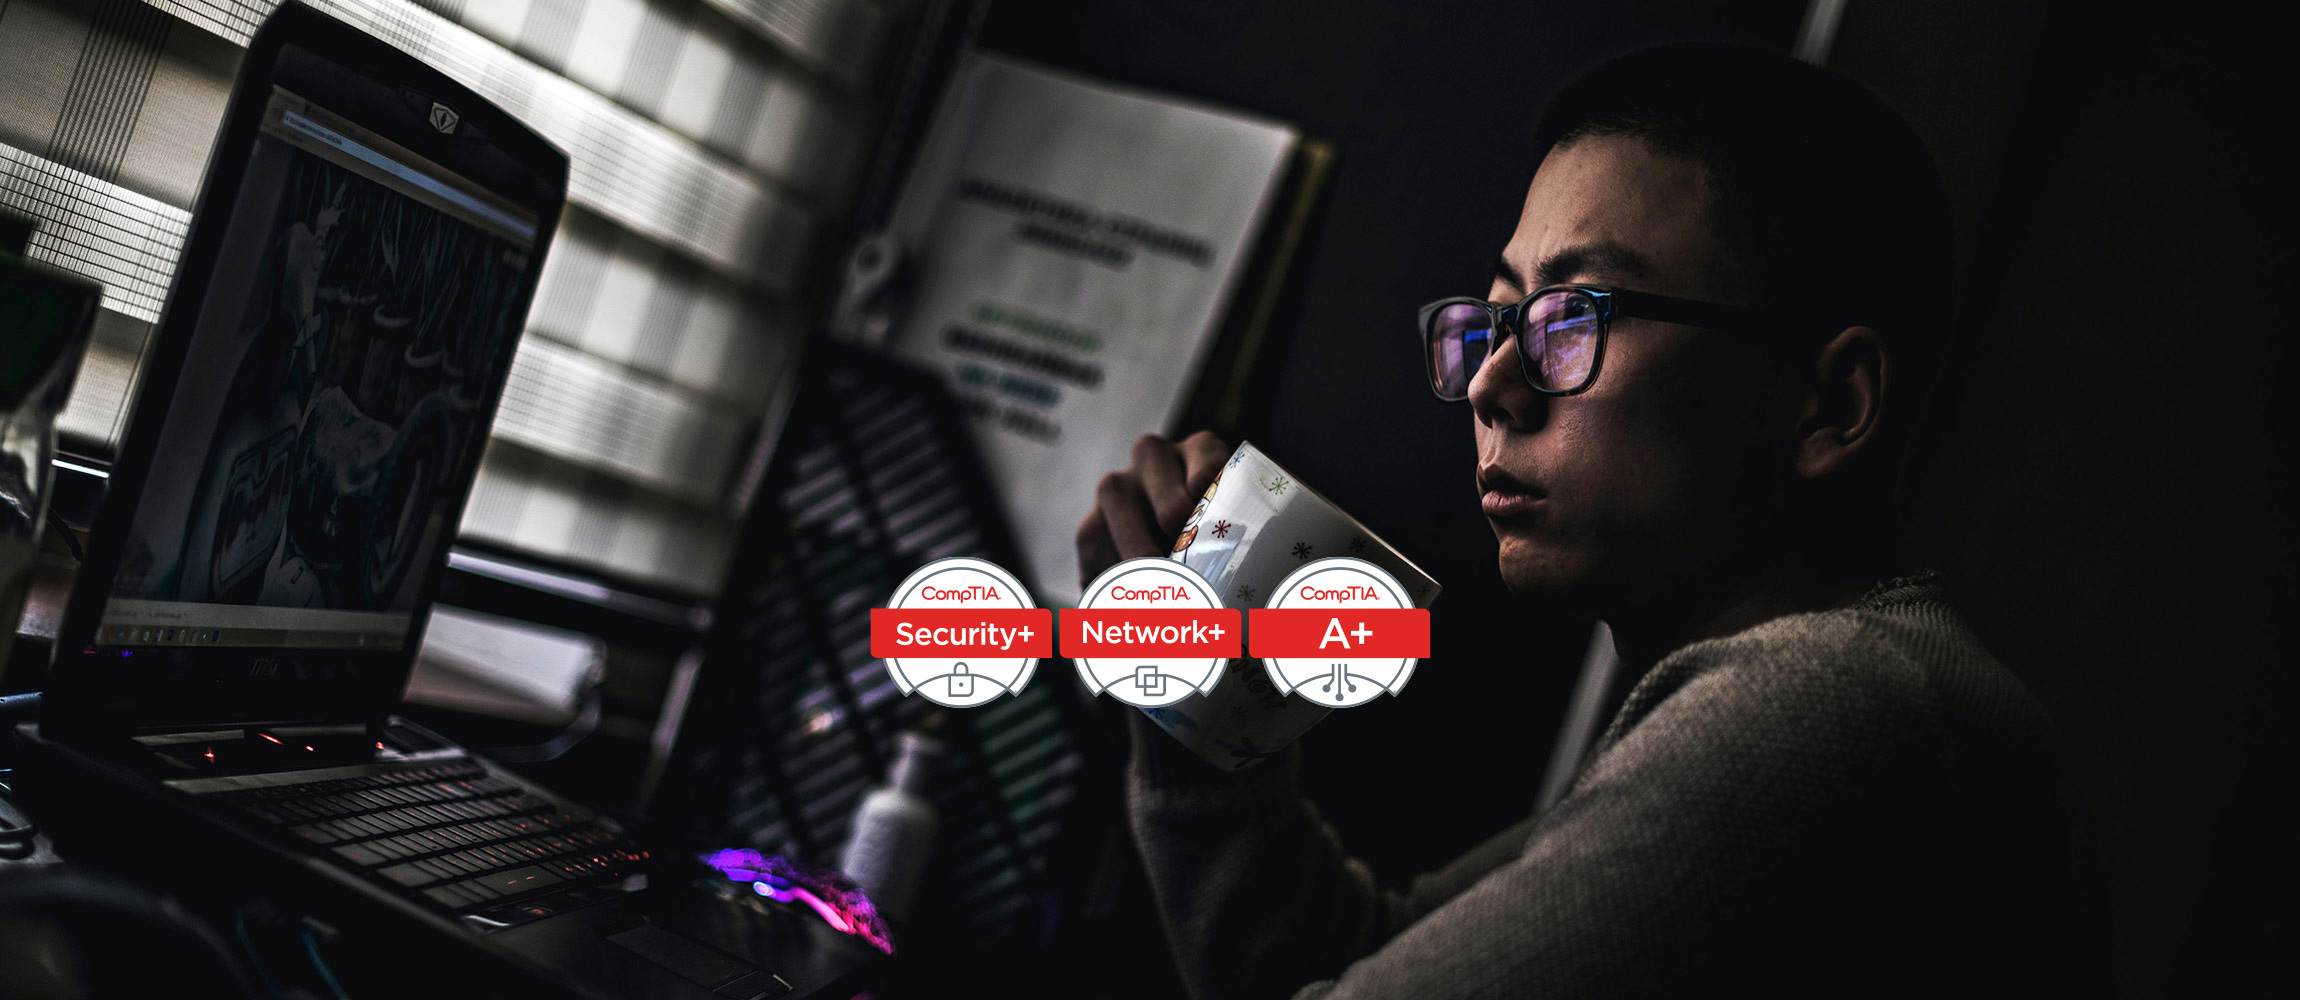 Develop the Skills to Succeed with CompTIA Certification Training!